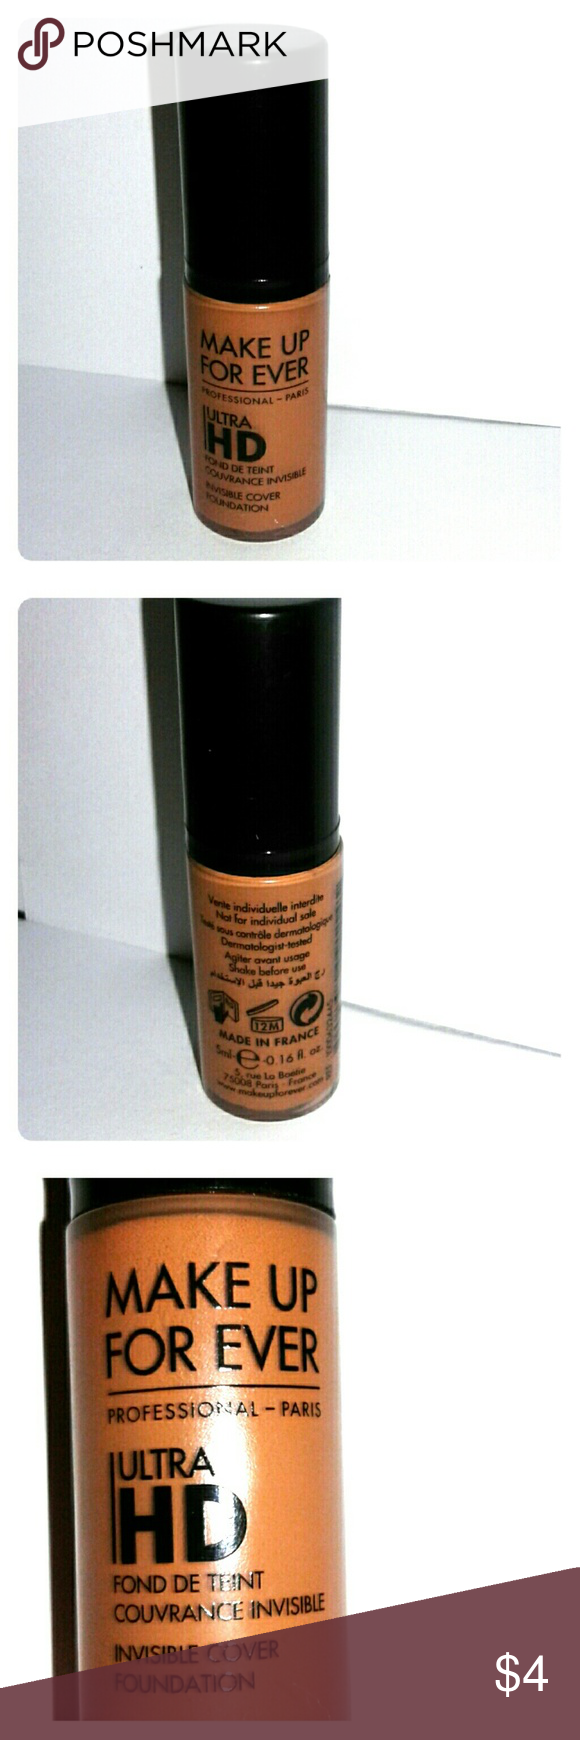 NWOT Makeup Forever Ultra HD Foundation Makeup forever